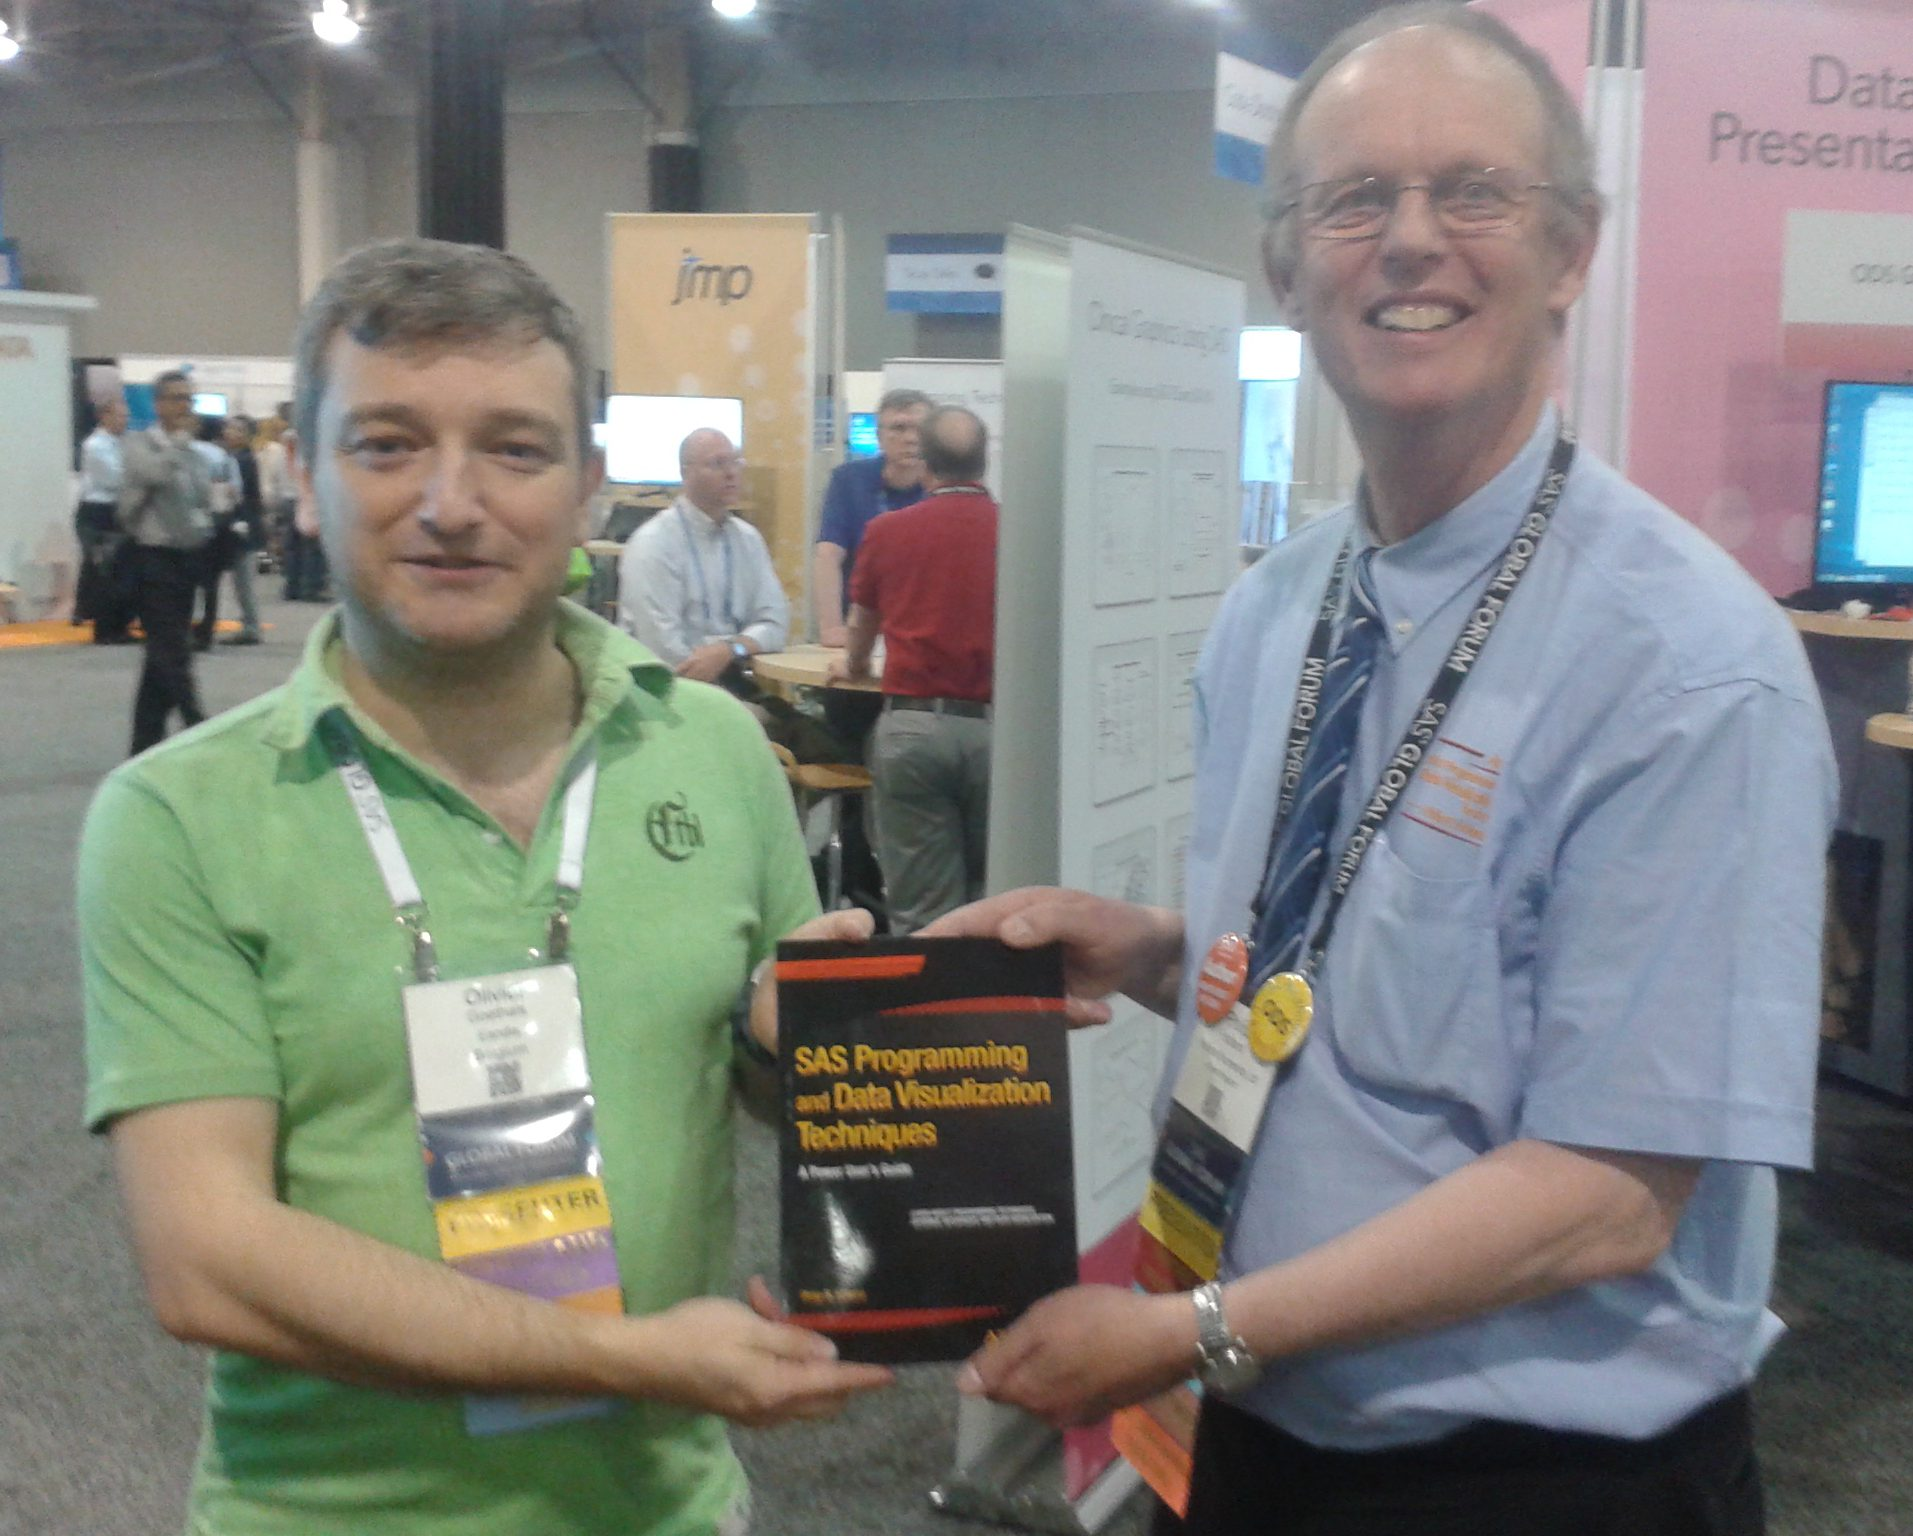 Olivier Goethals won a copy of my book in Las Vegas